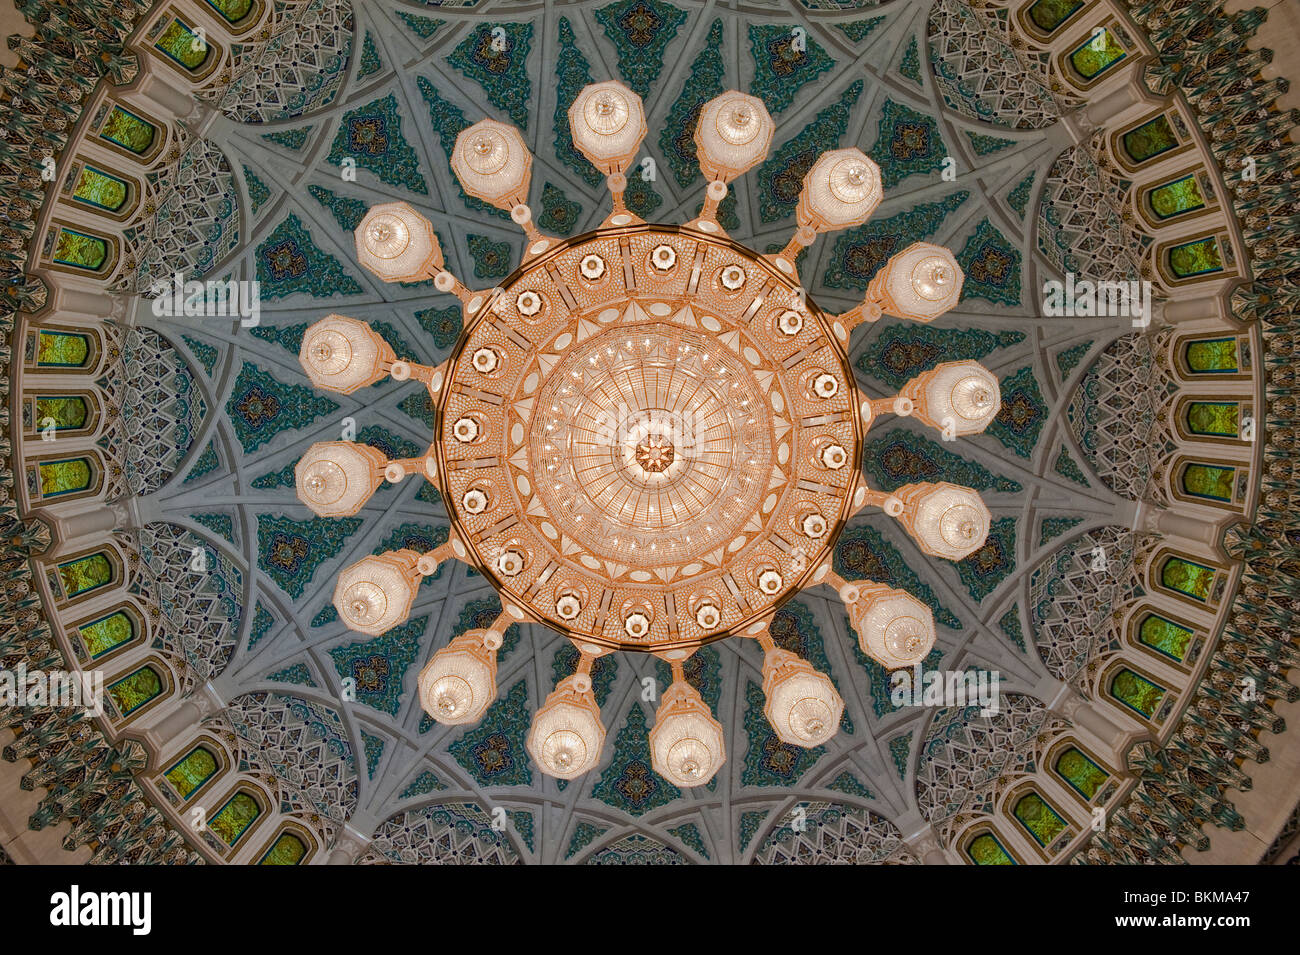 The worlds largest chandelier in sultan qaboos grand mosque muscat the worlds largest chandelier in sultan qaboos grand mosque muscat oman arubaitofo Image collections